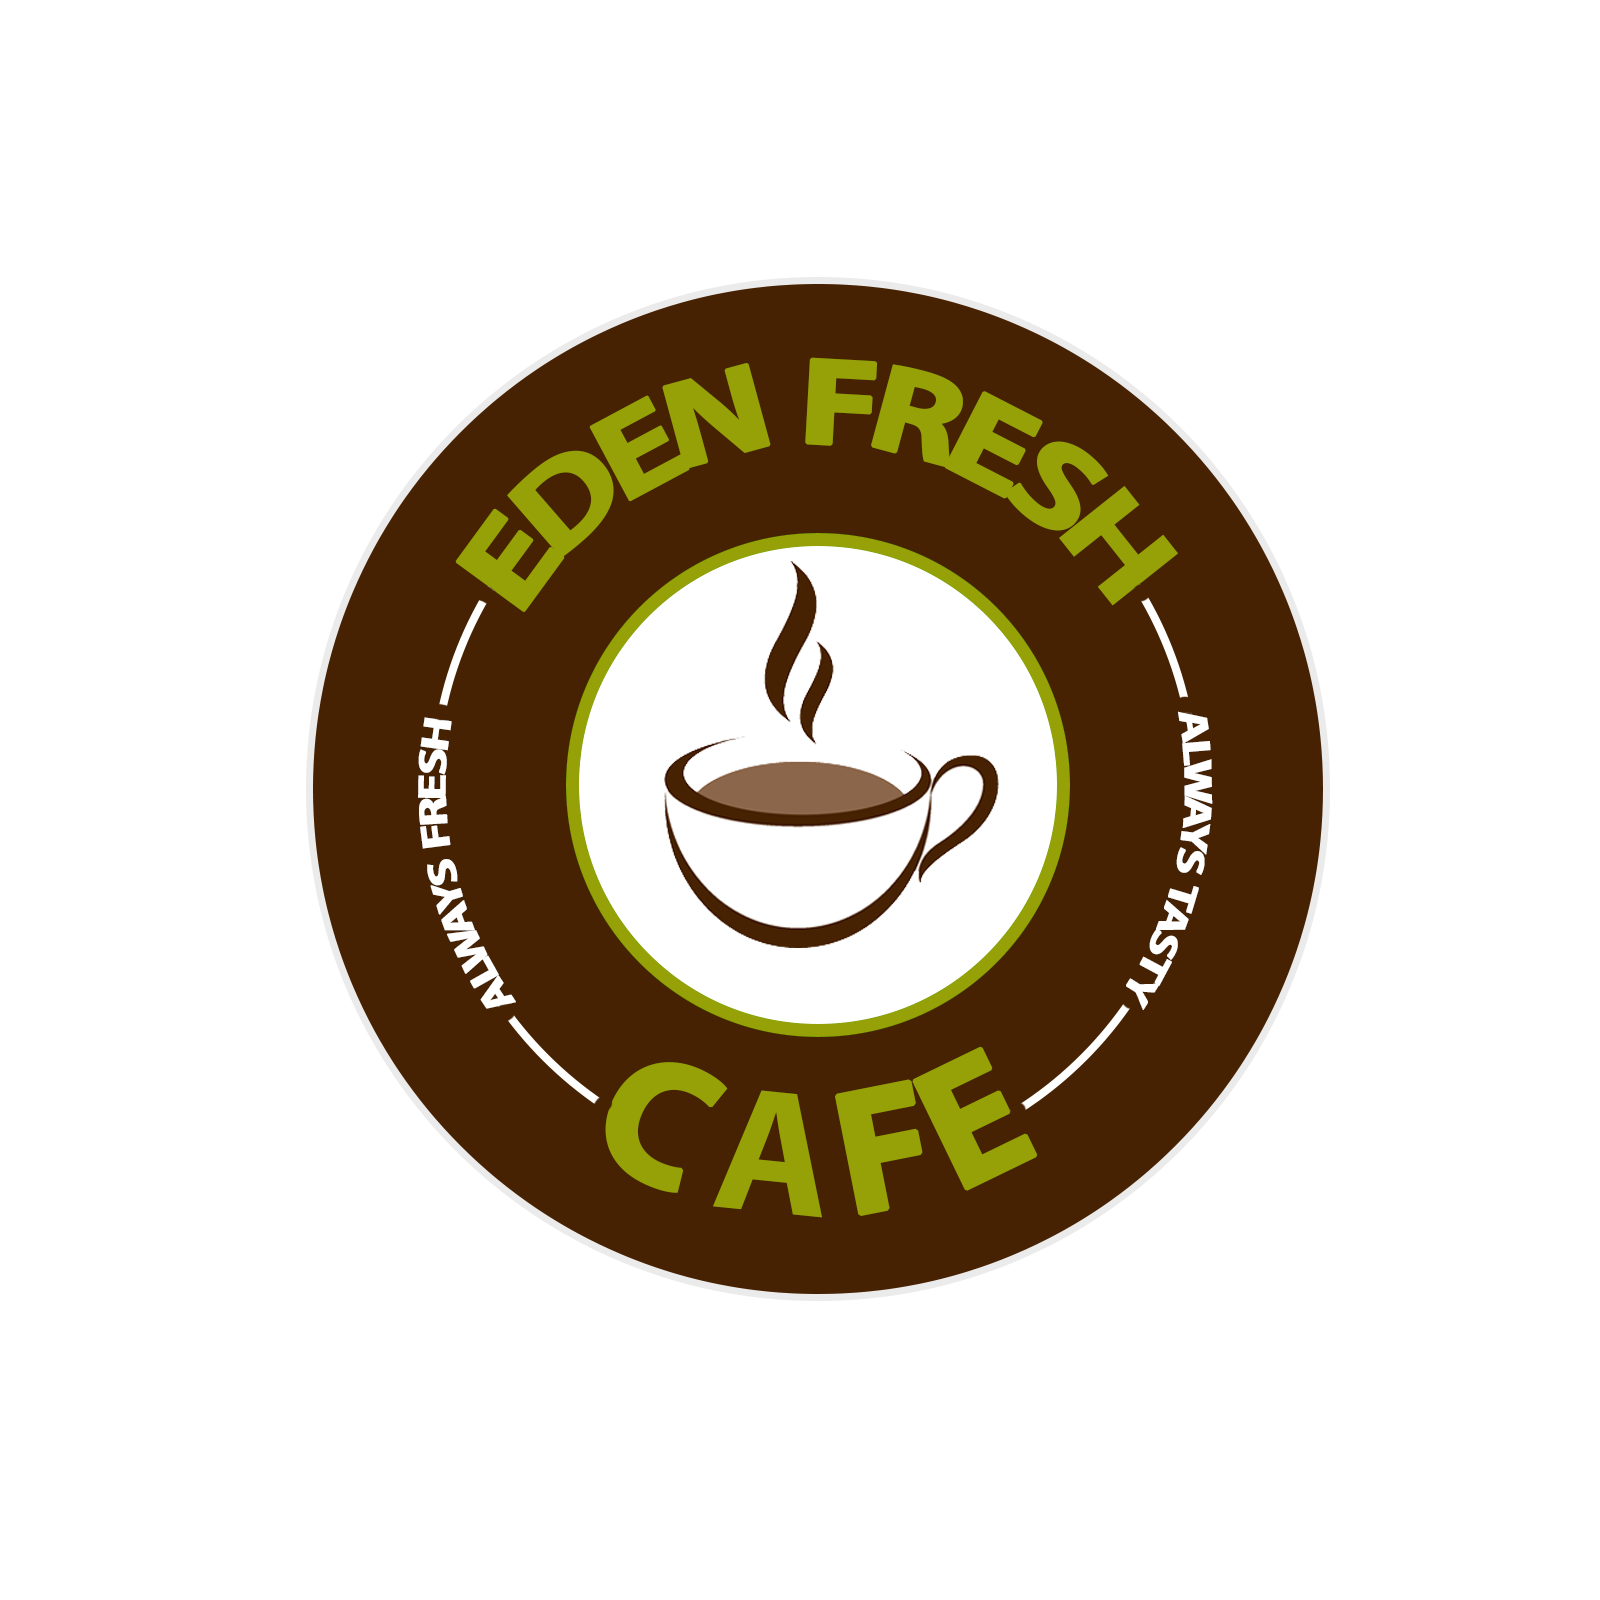 Eden Fresh Cafe - Our Story